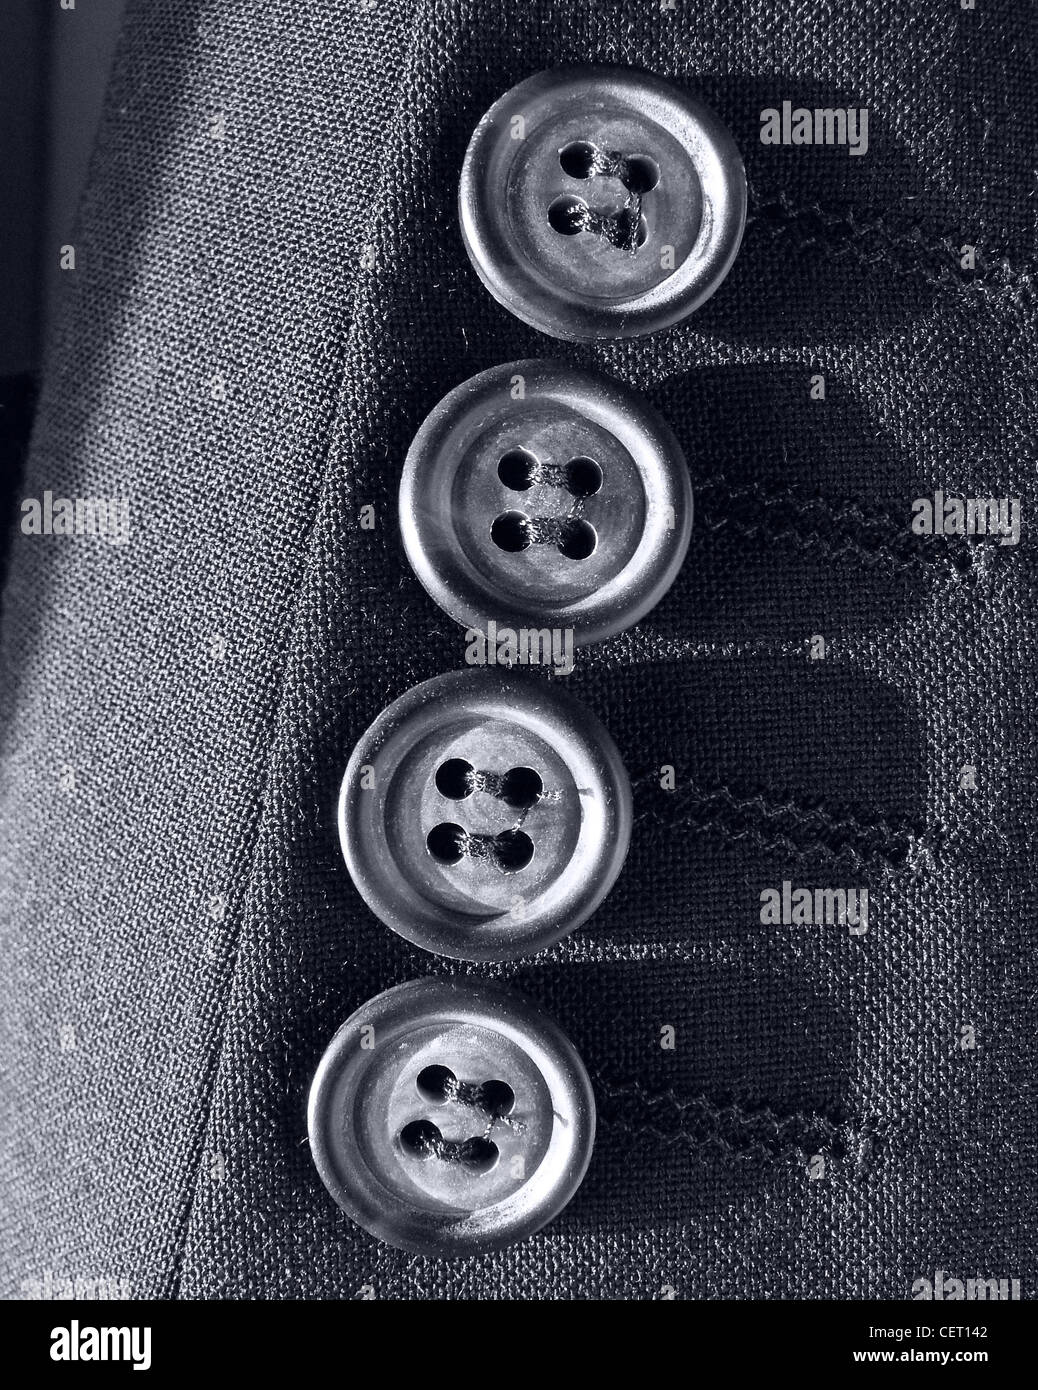 Four buttons on a quality suit Tailor tailoring Stock Photo